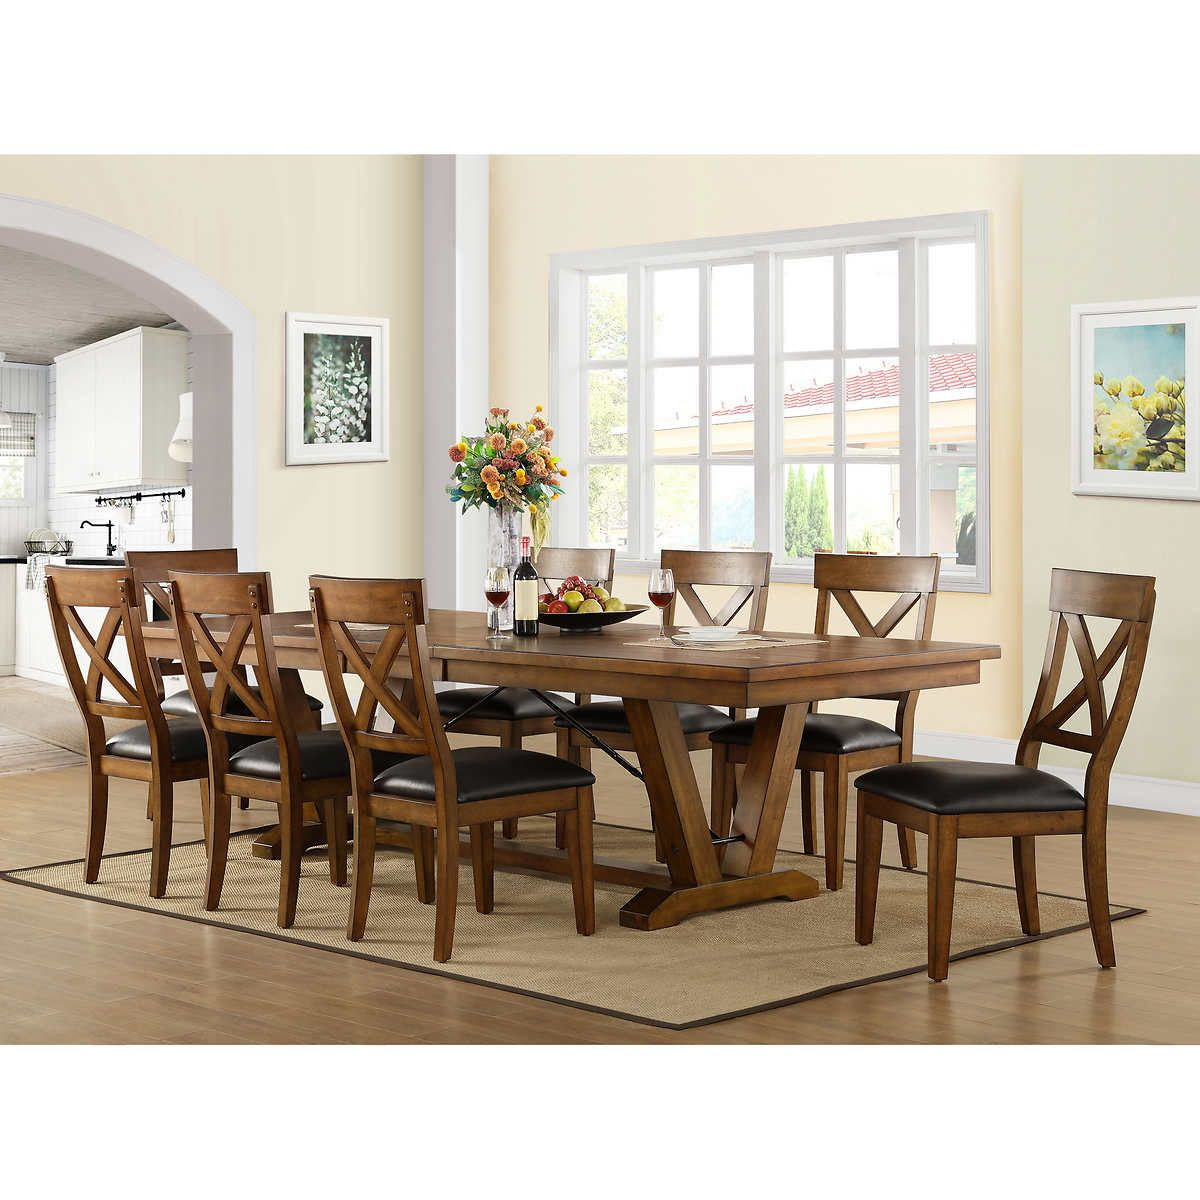 Bolton 9 Piece Dining Bayside Furnishings Dining Room Makeover Kitchen Dining Sets